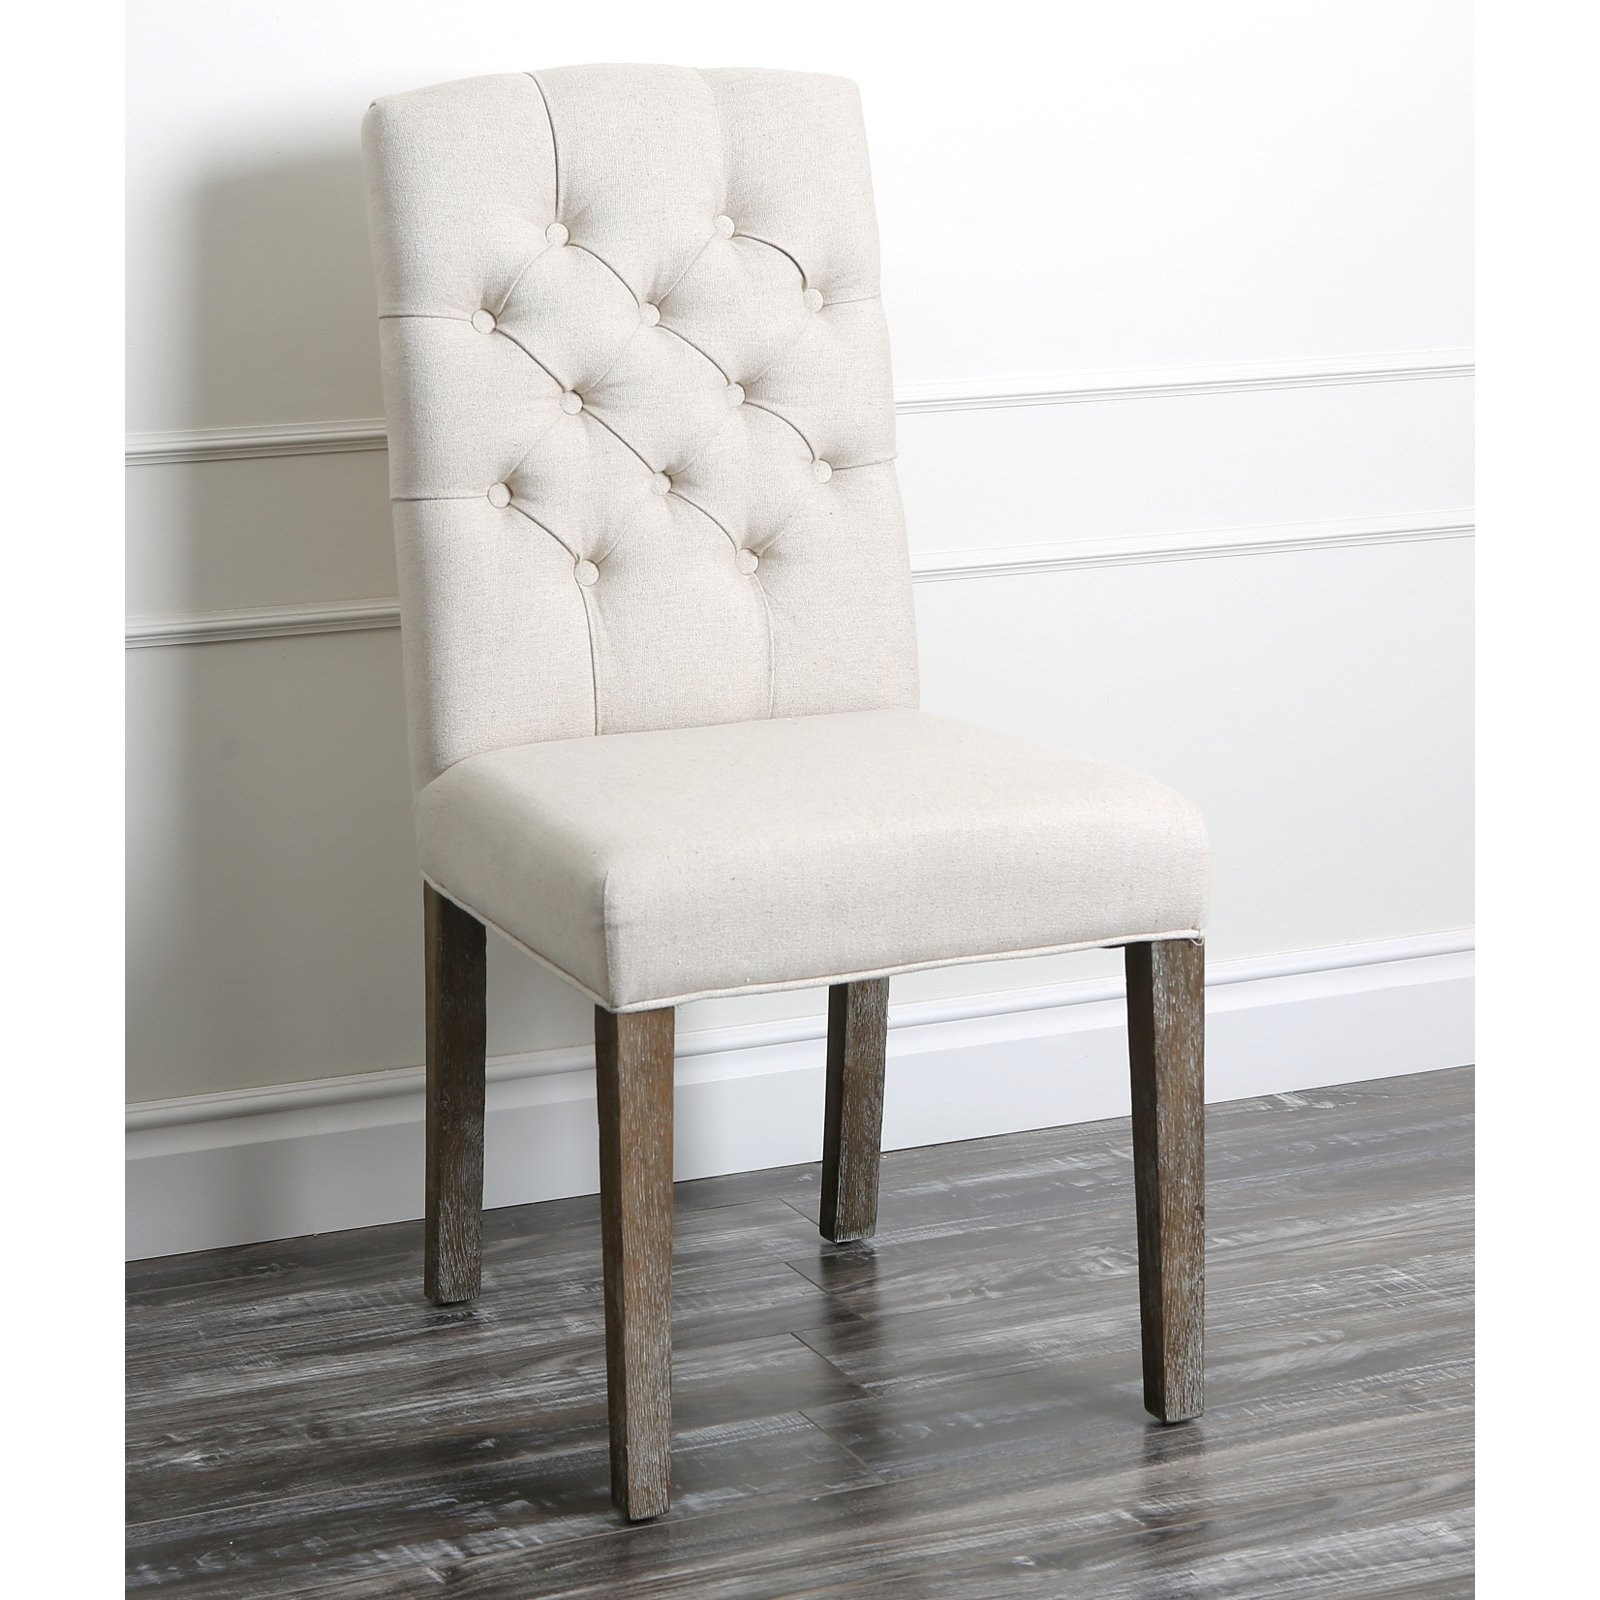 Walmart Dining Chairs | Tufted Dining Chair | World Market Armchair